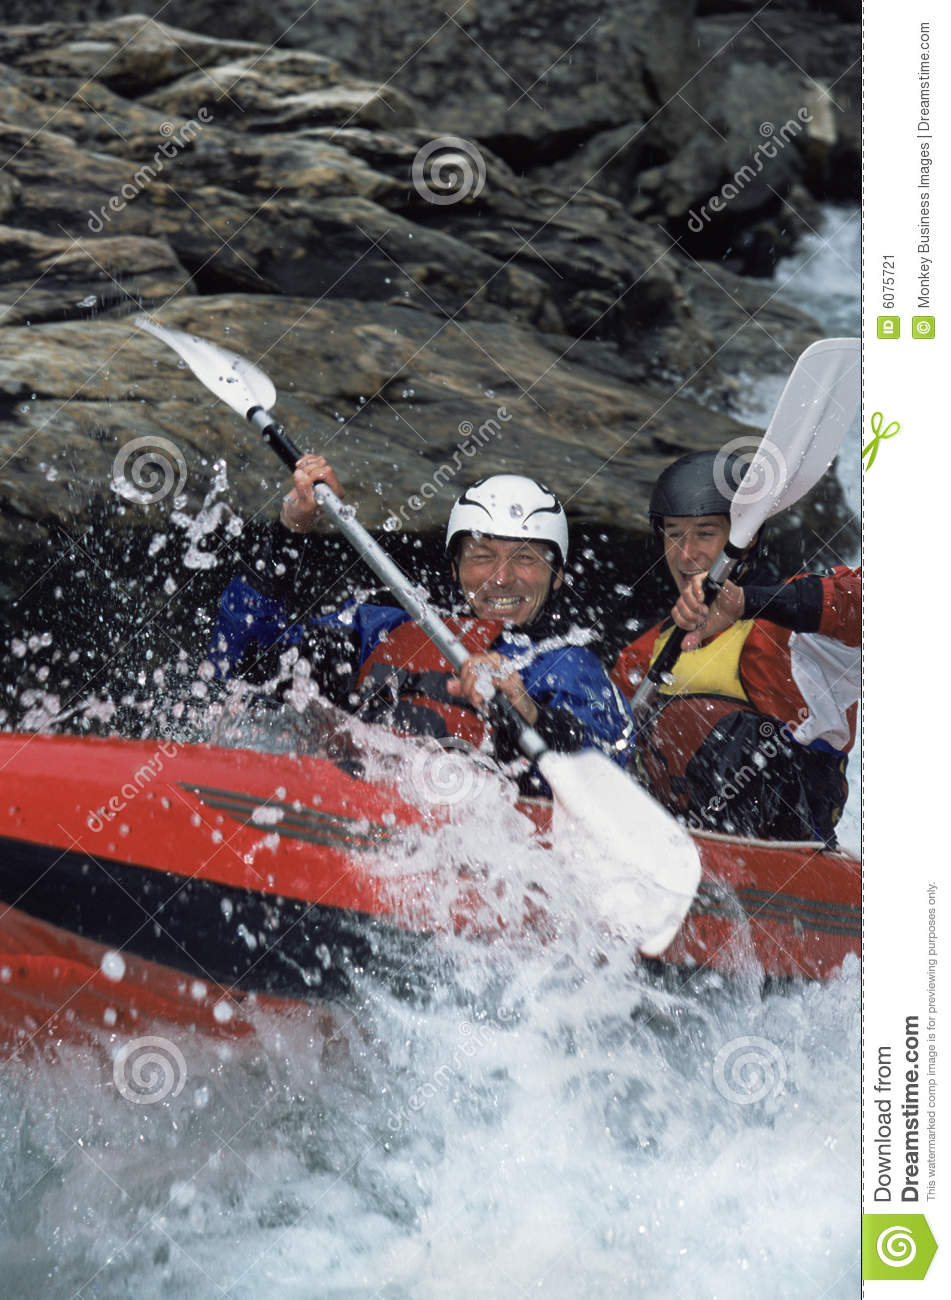 Two People Paddling Inflatable Boat Down Rapids Stock Image - Image: 6075721